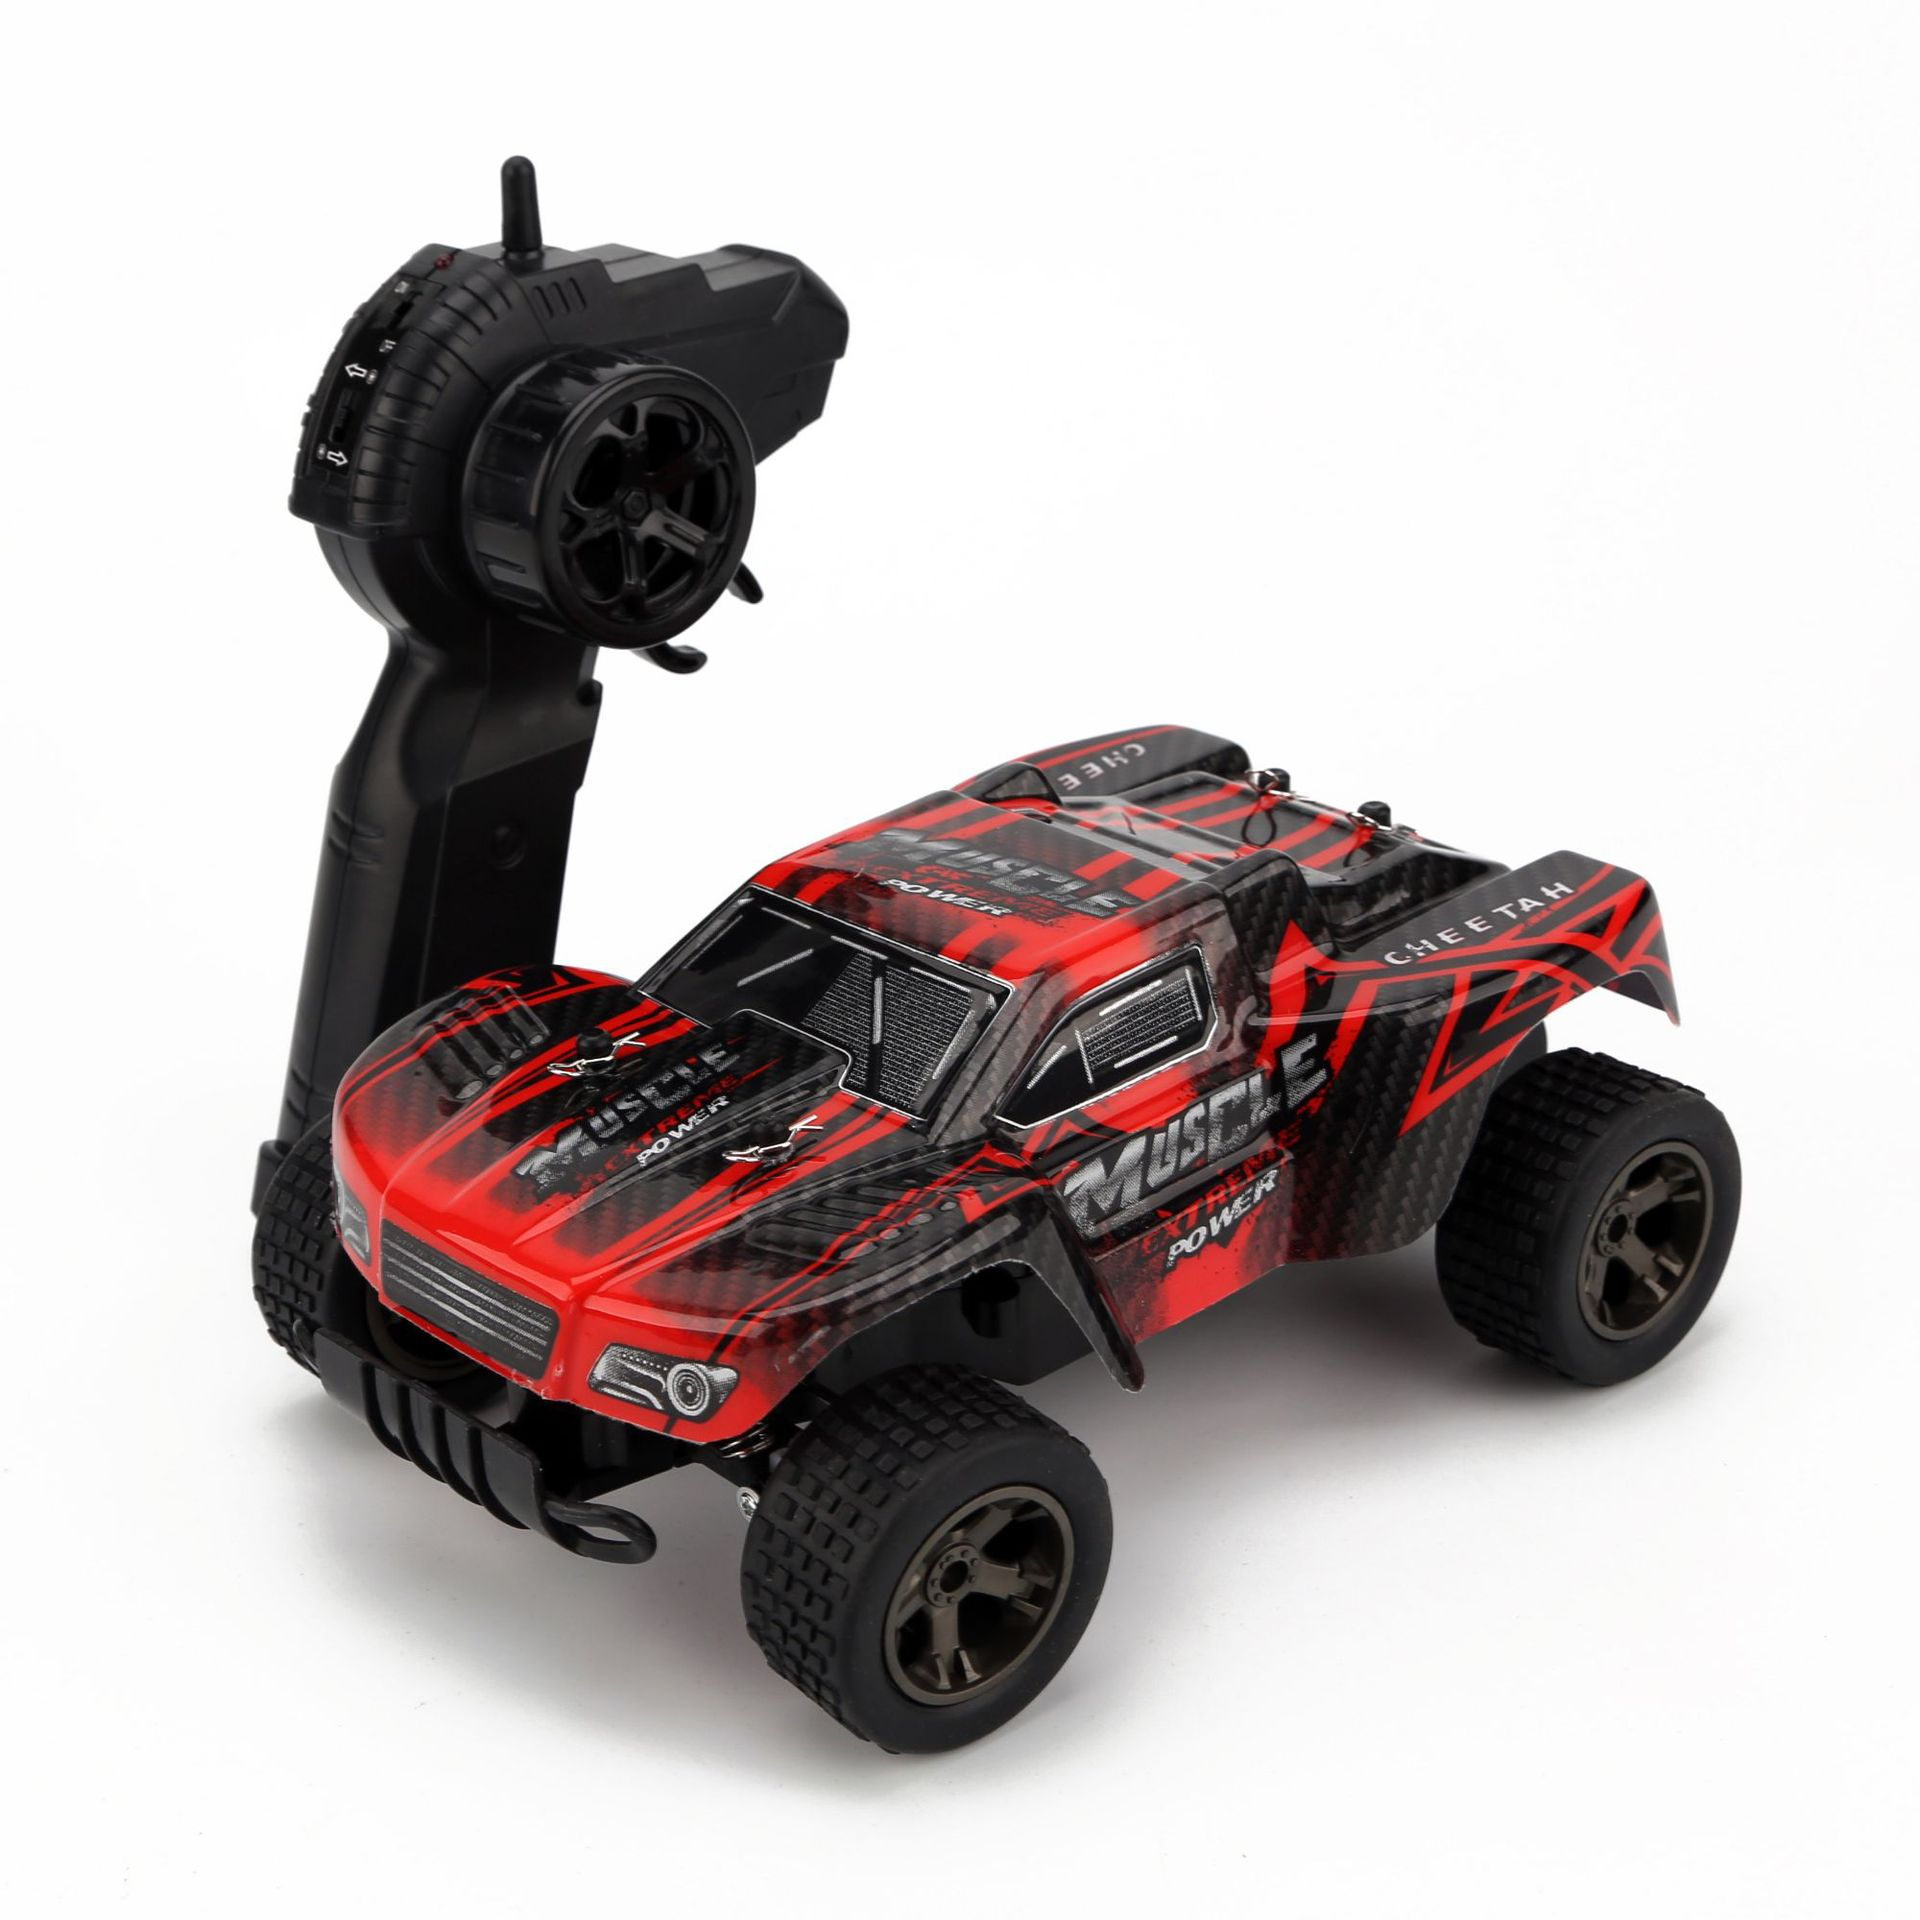 1/18 2.4GHz 4WD Monster Rc Racing Car Remote Control High Speed Off-road Vehicle Electric RC Toy Truck Buggy Kid Surprise Gift electric rc car a232 high speed control off road monster truck buggy rc drift car remote control toy for kid gifts vs a979 l202